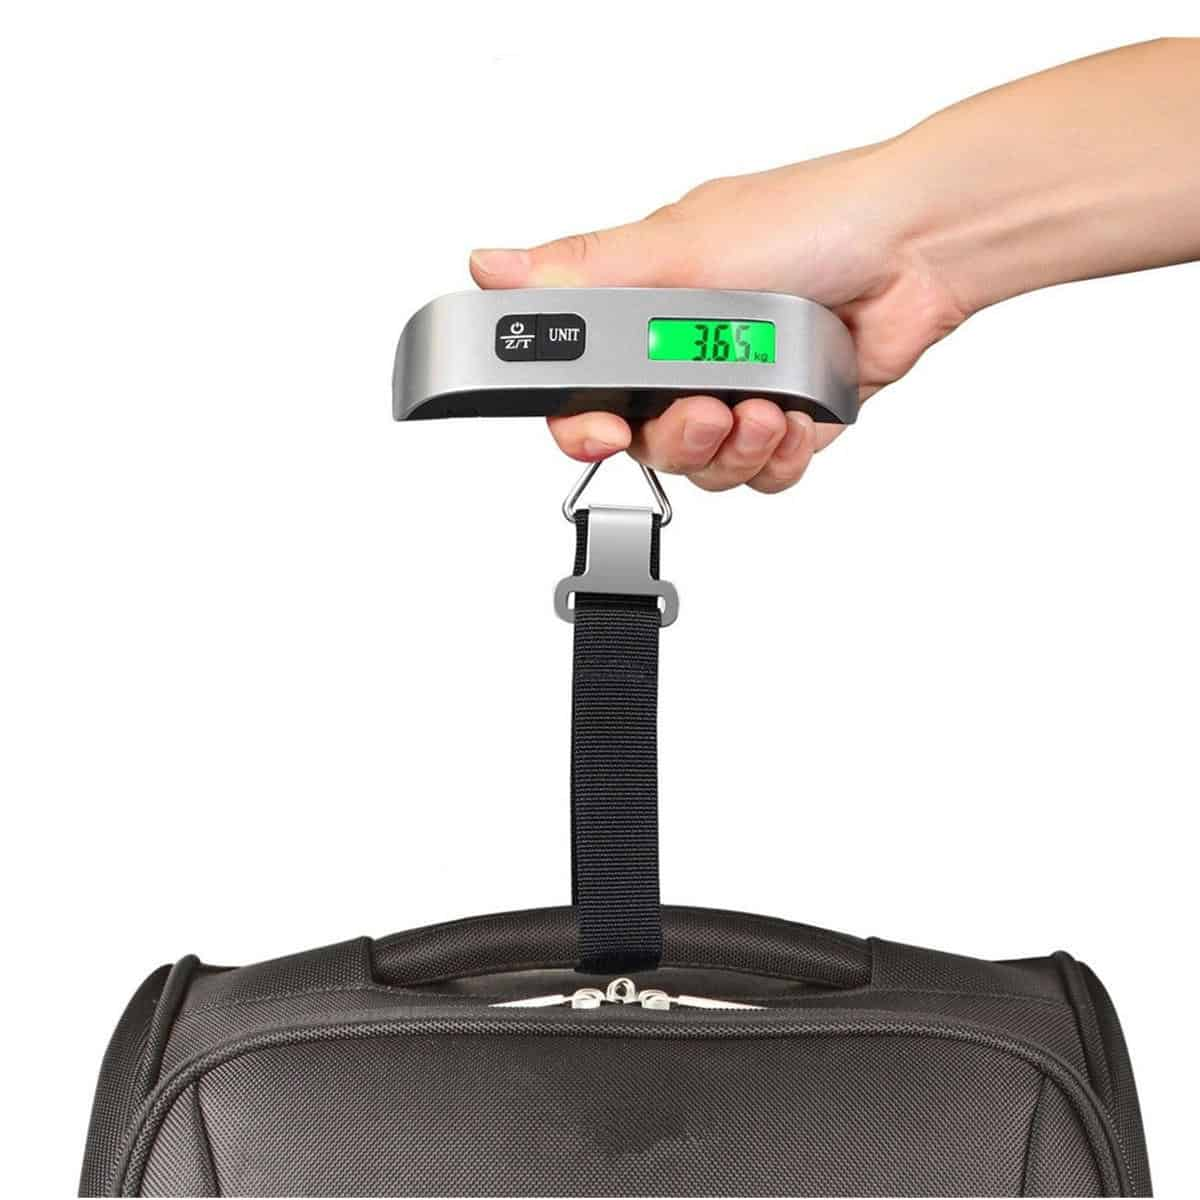 Digital Luggage Weighing Scale & Luggage Organizer For Your Travel